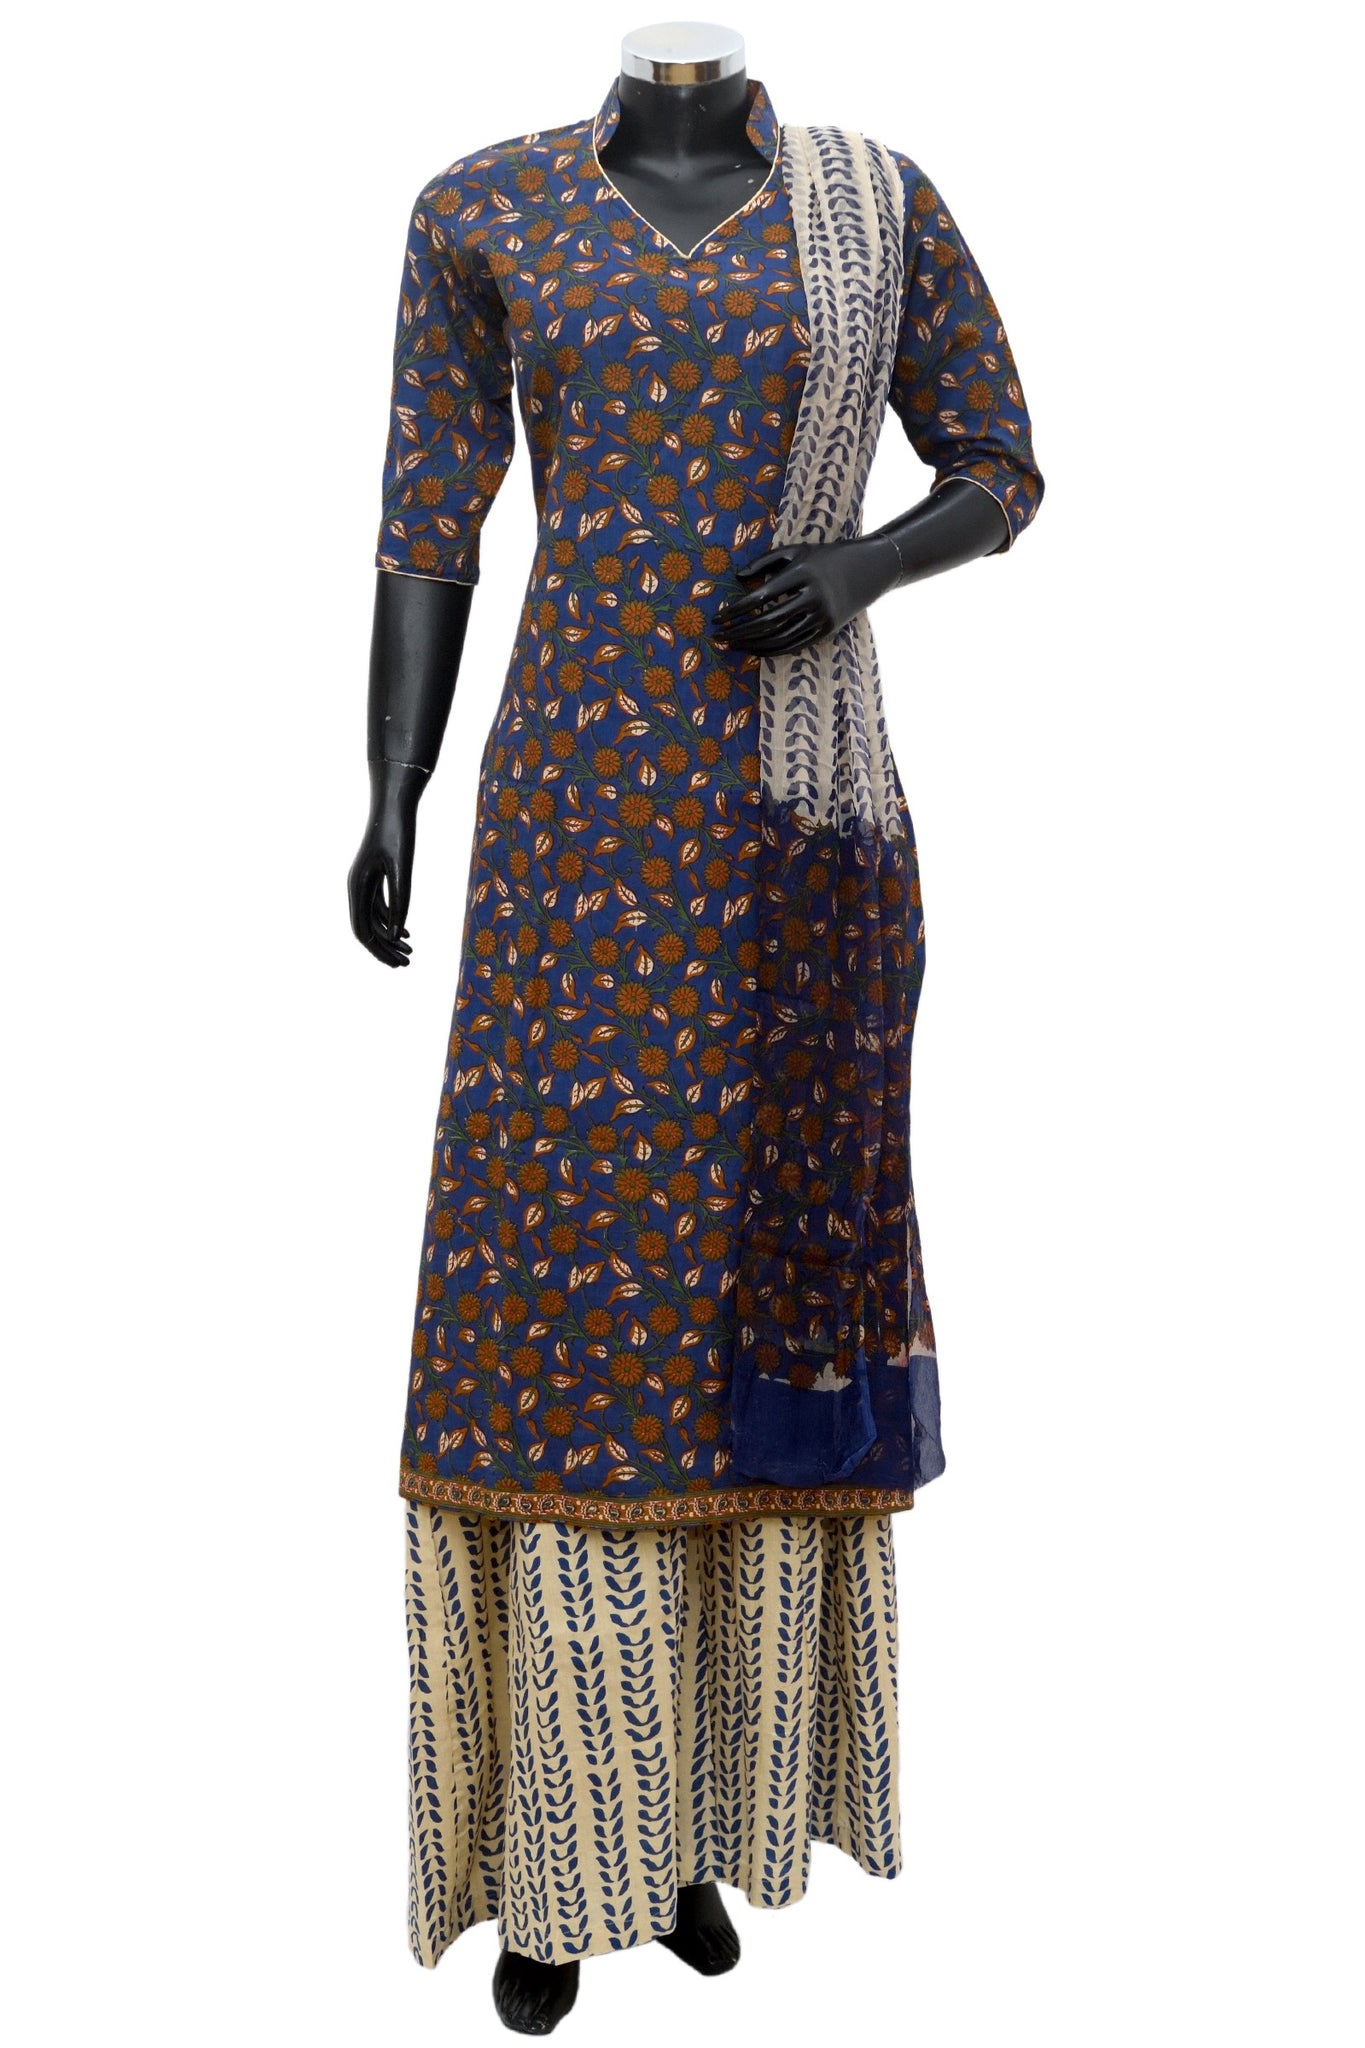 A printed palazo dress fdn874-161